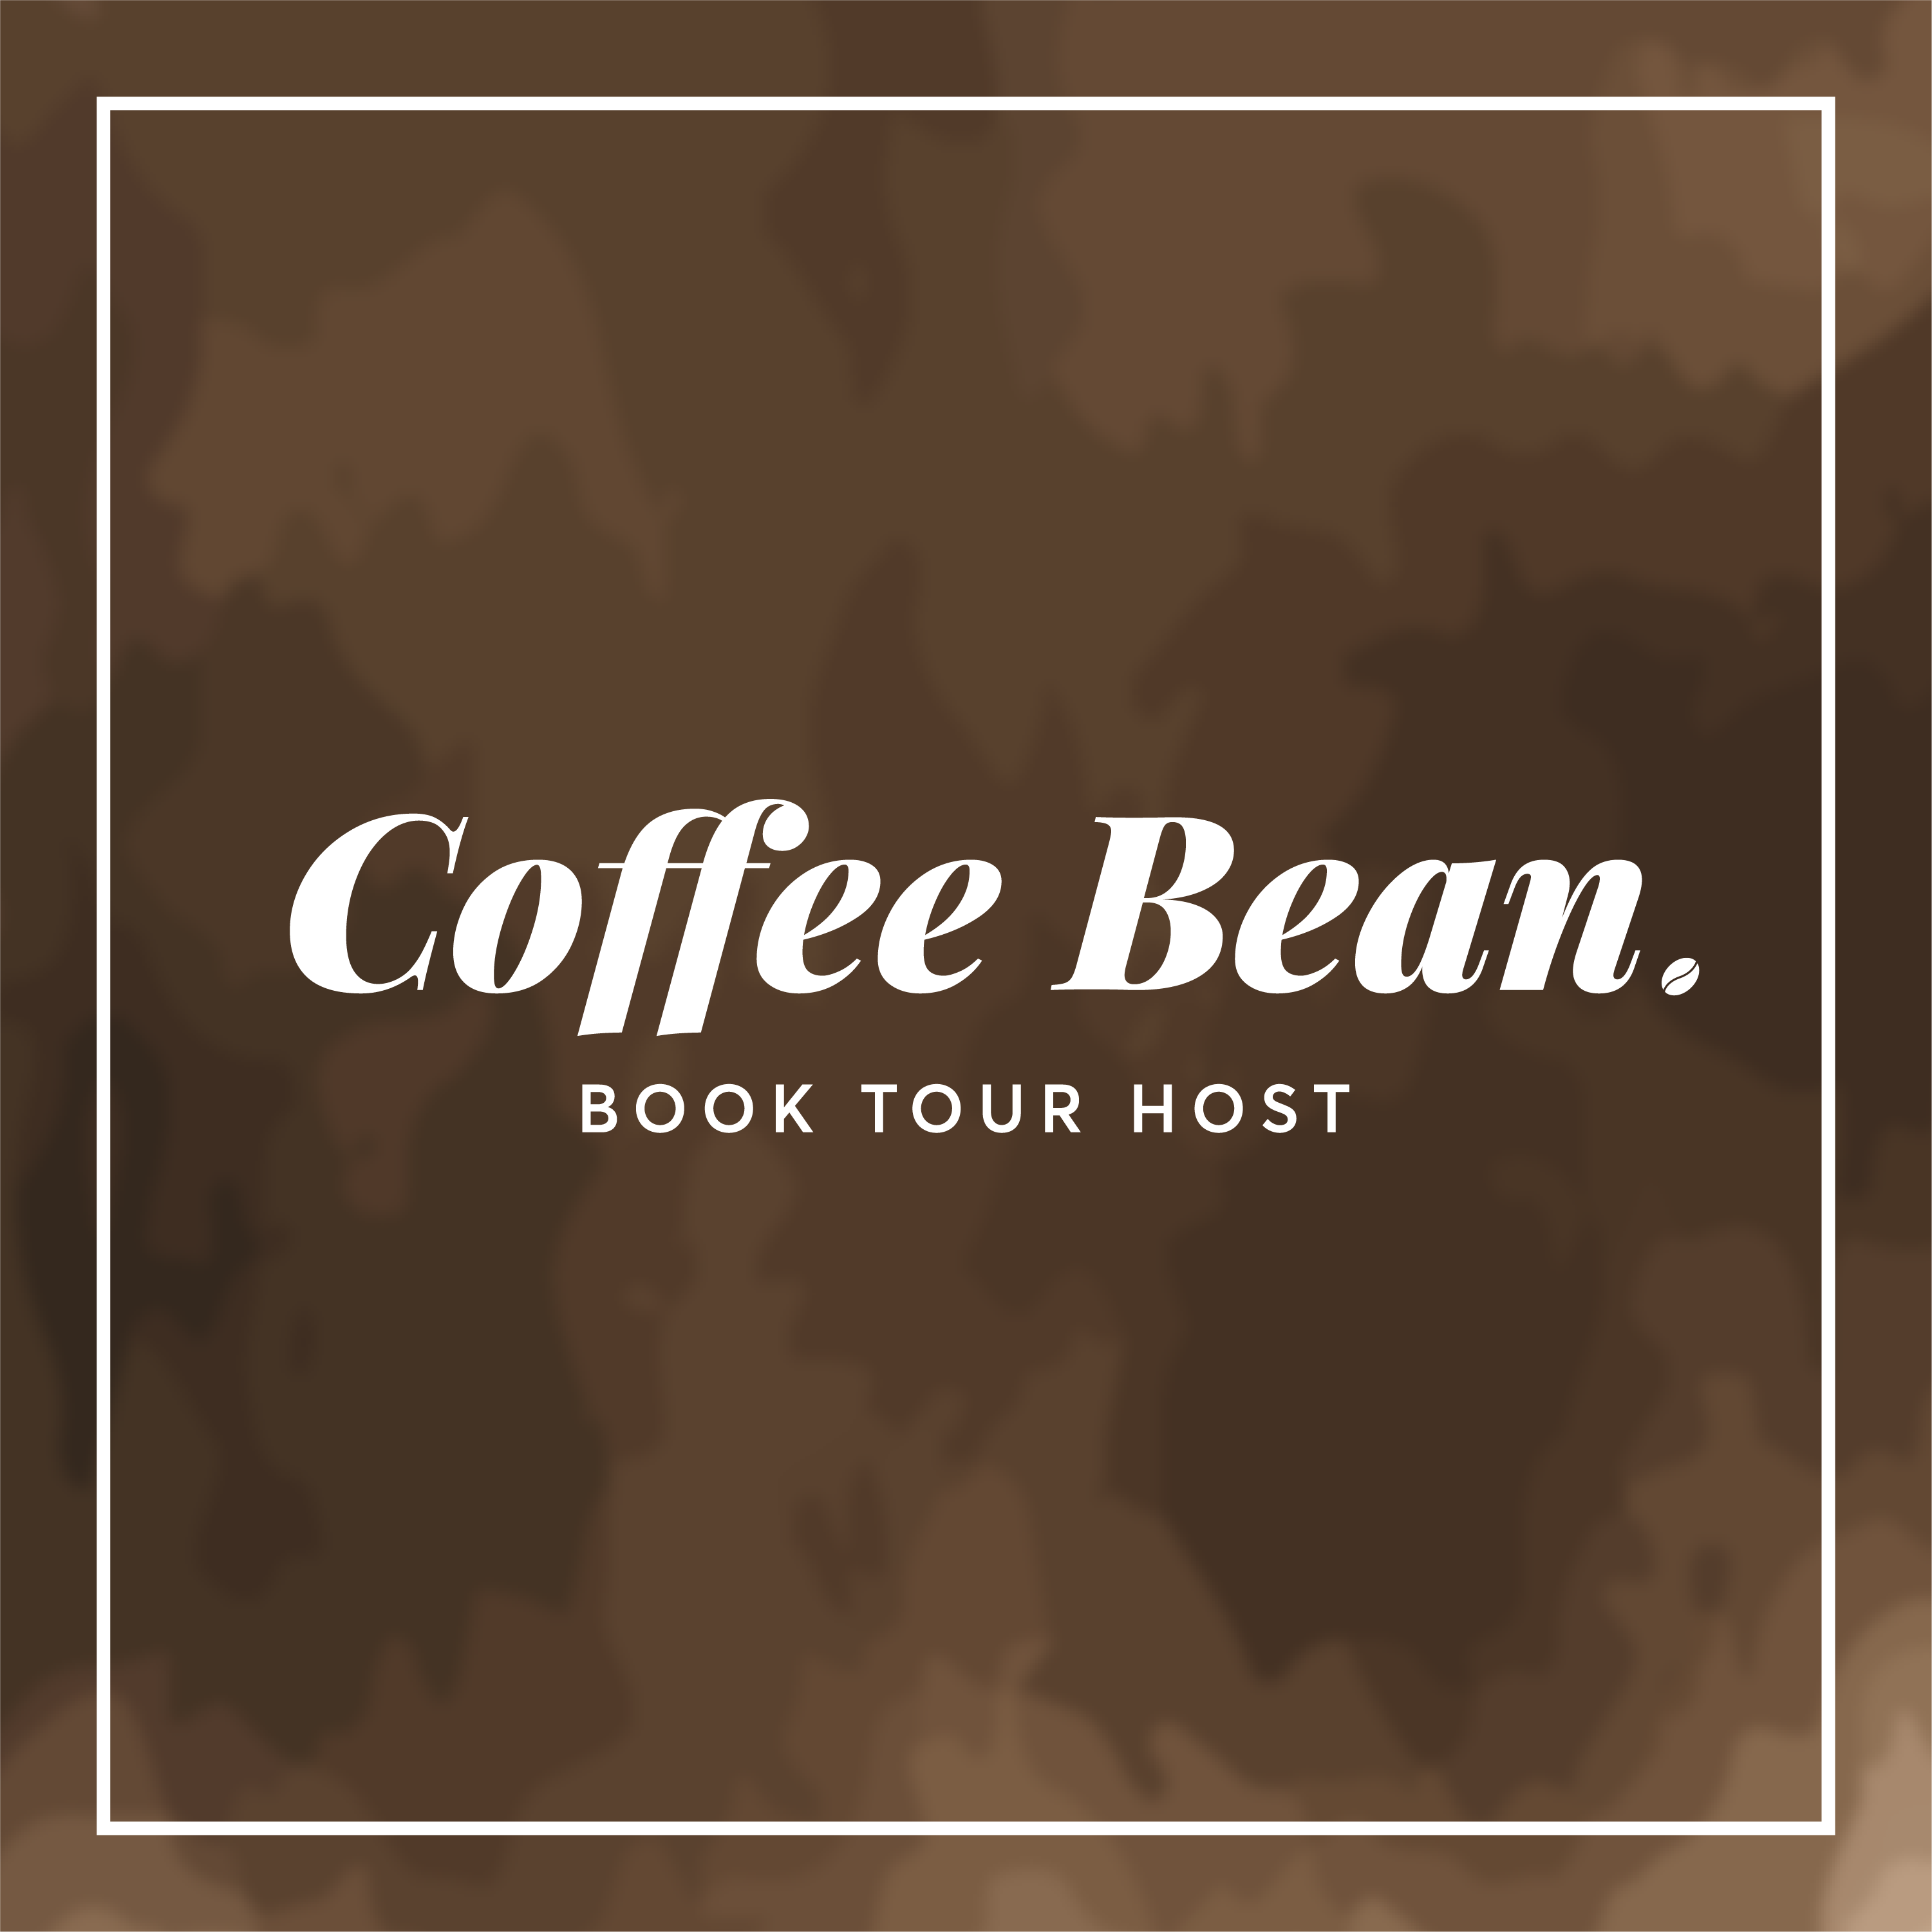 Coffee Bean Book Tour Host